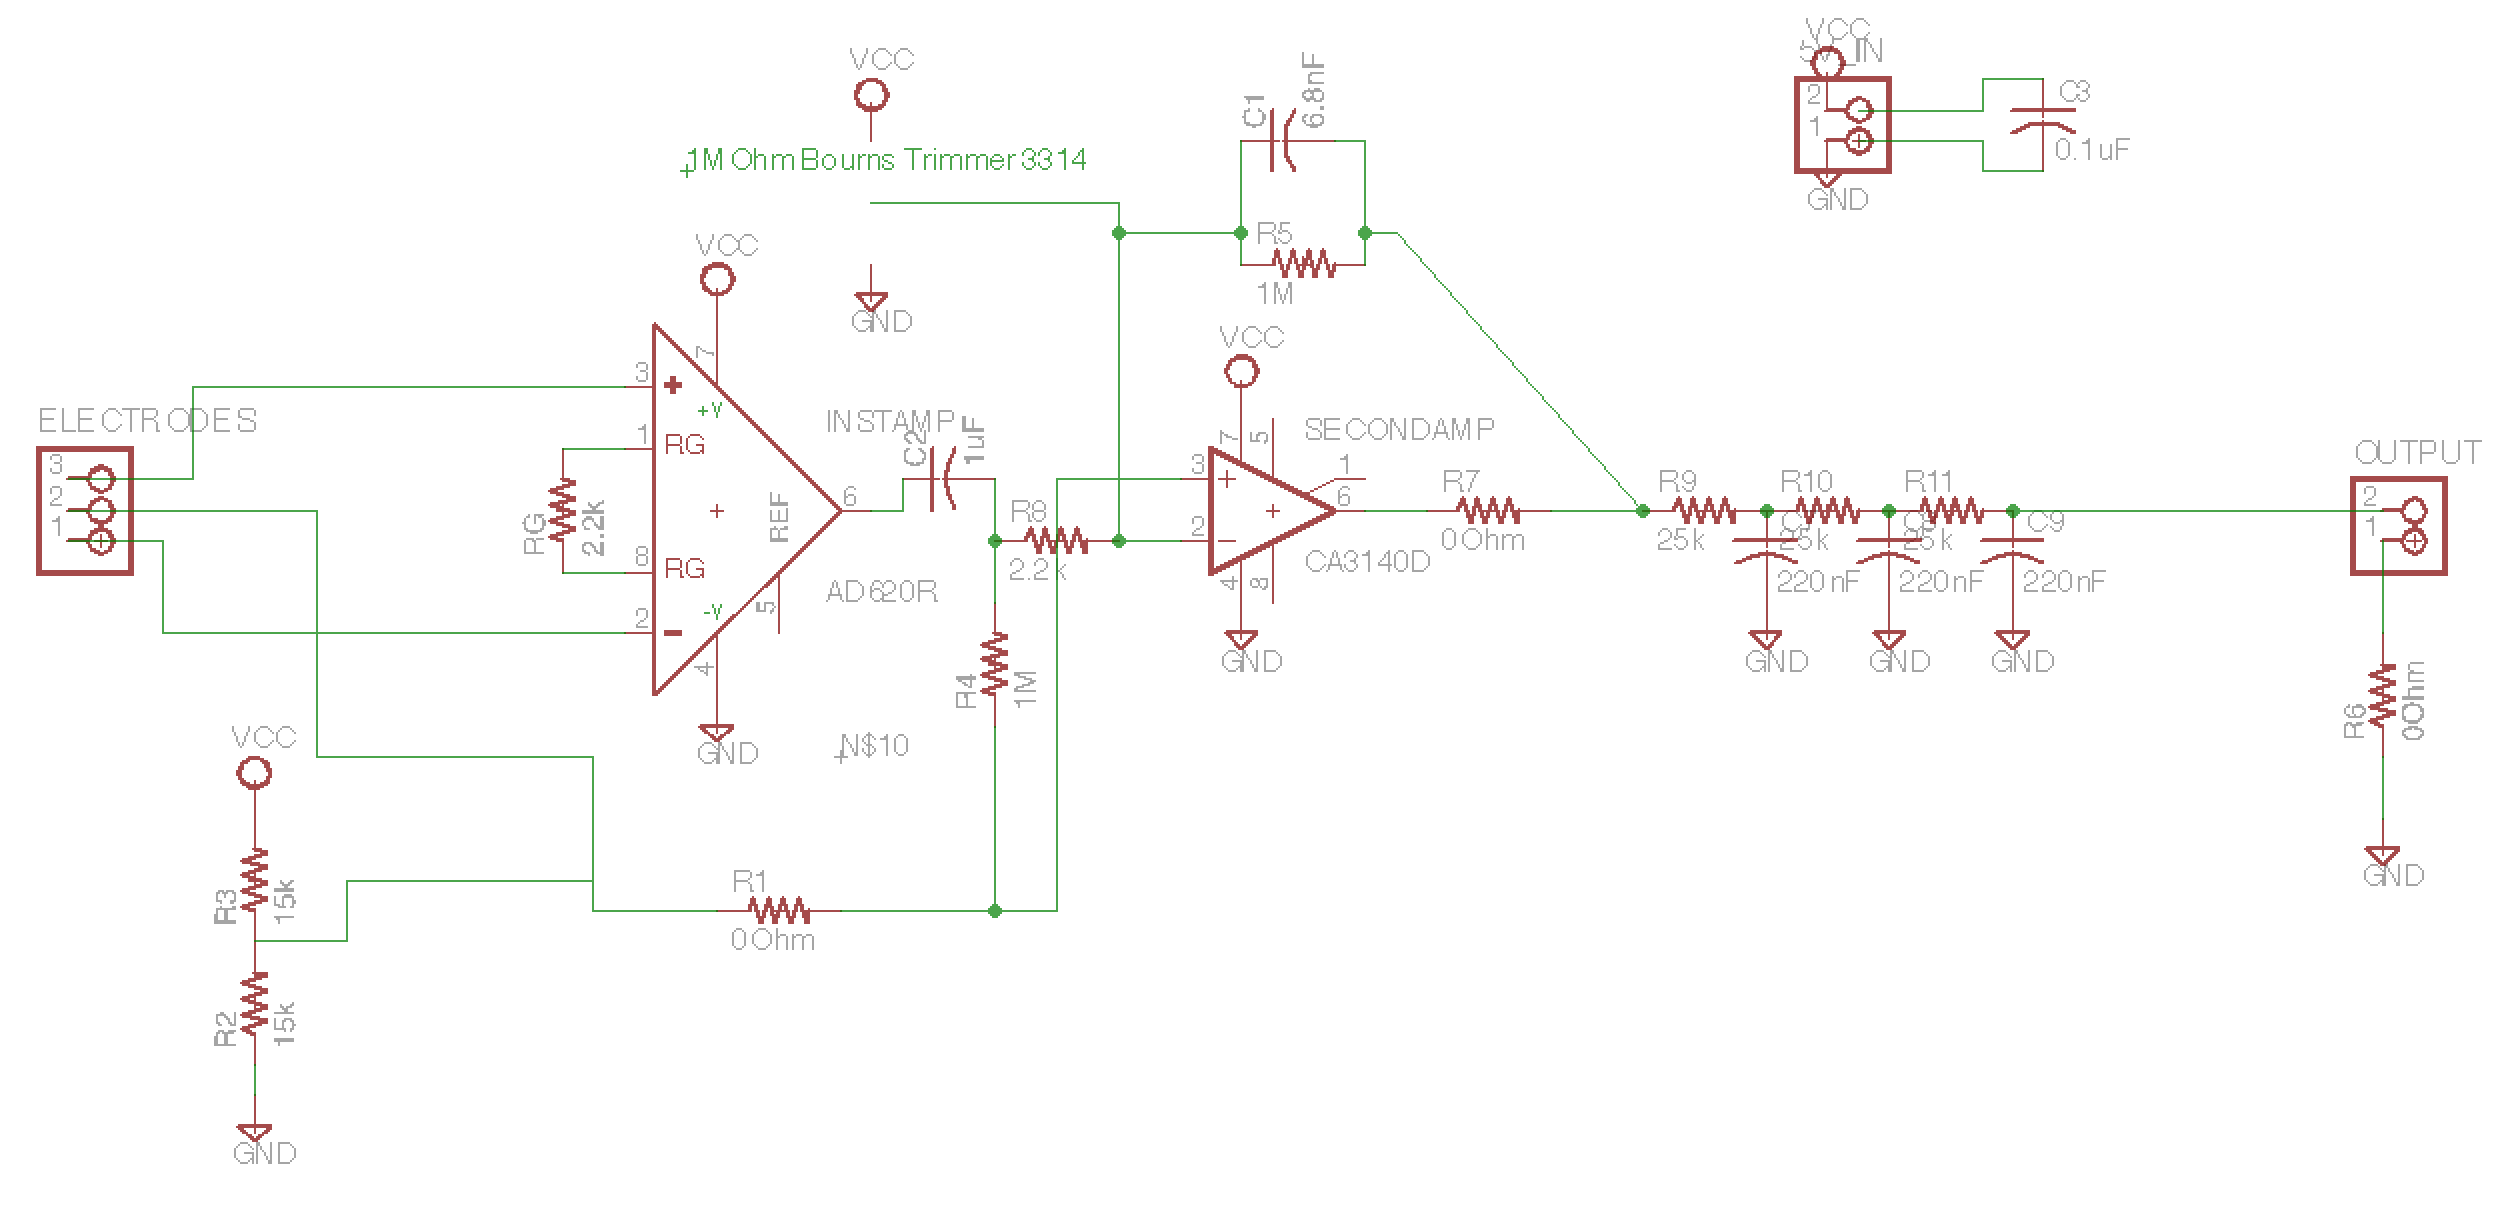 Ecg Circuit Diagram Using Ad620 on diy induction heating circuit diagram